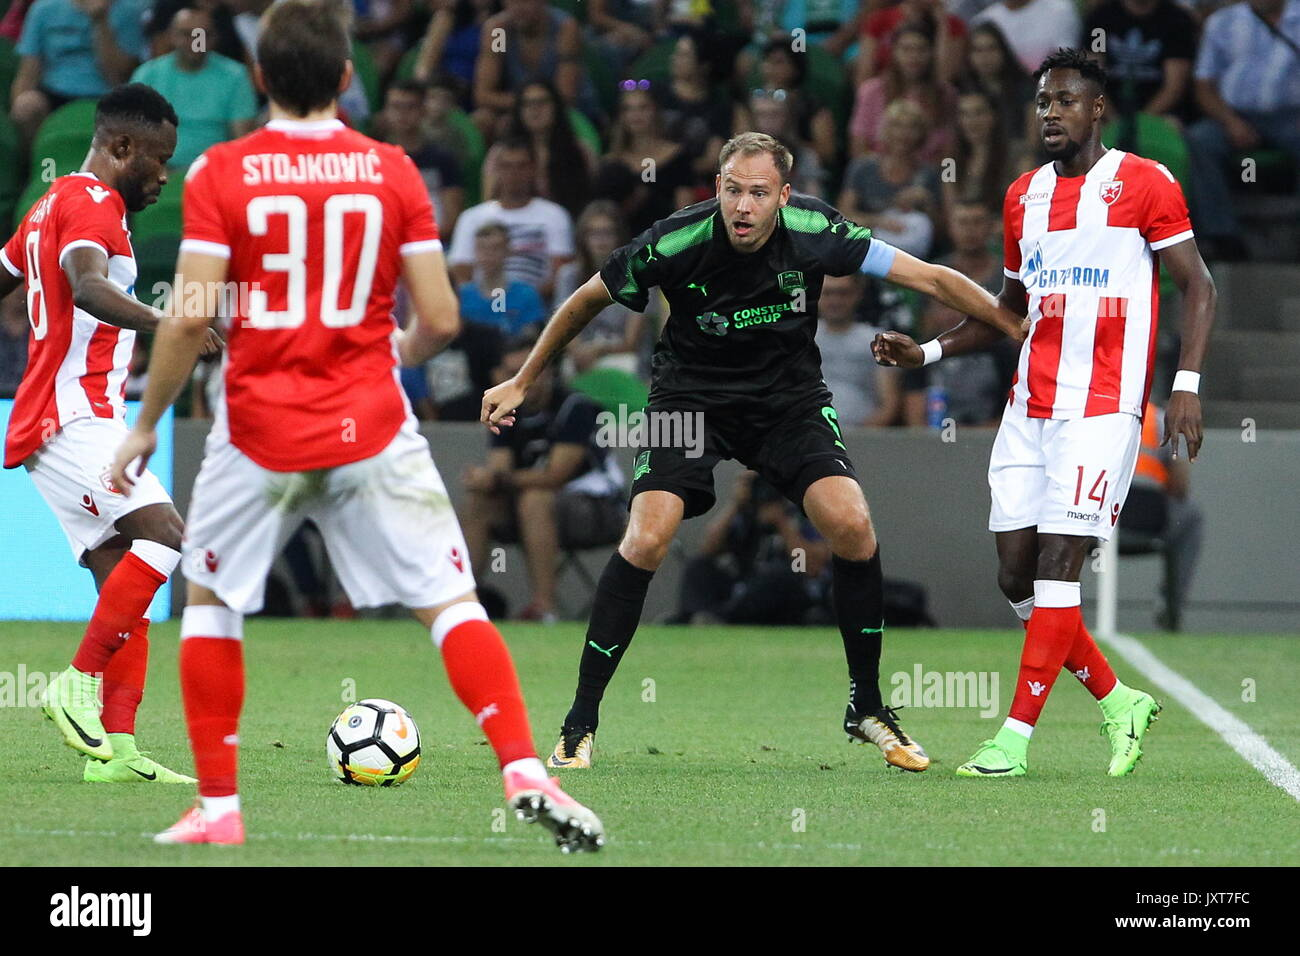 Krasnodar Russia August 17 2017 Crvena Zvezda Belgrade S Guelor Stock Photo Alamy